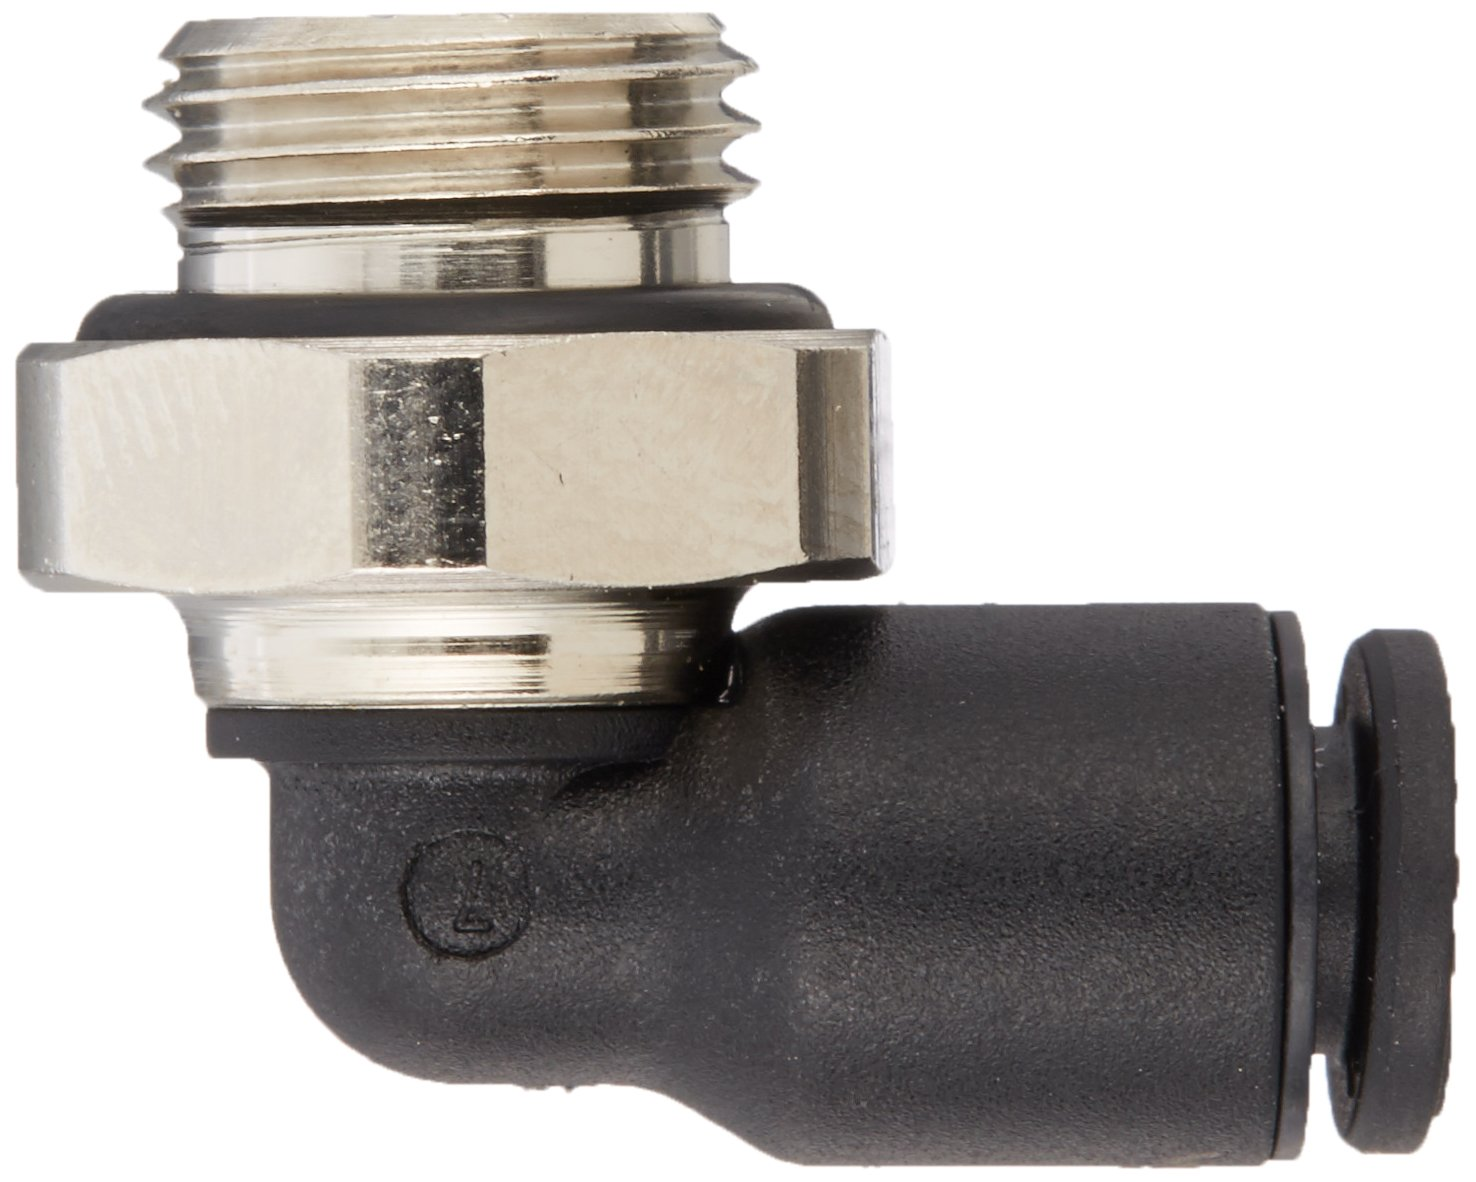 Legris 3199 08 21 Nylon /& Nickel-Plated Brass Push-to-Connect Fitting 5//16 or 8 mm Tube OD x 1//2 BSPP Male 5//16 or 8 mm Tube OD x 1//2 BSPP Male Parker Legris 90 Degree Elbow